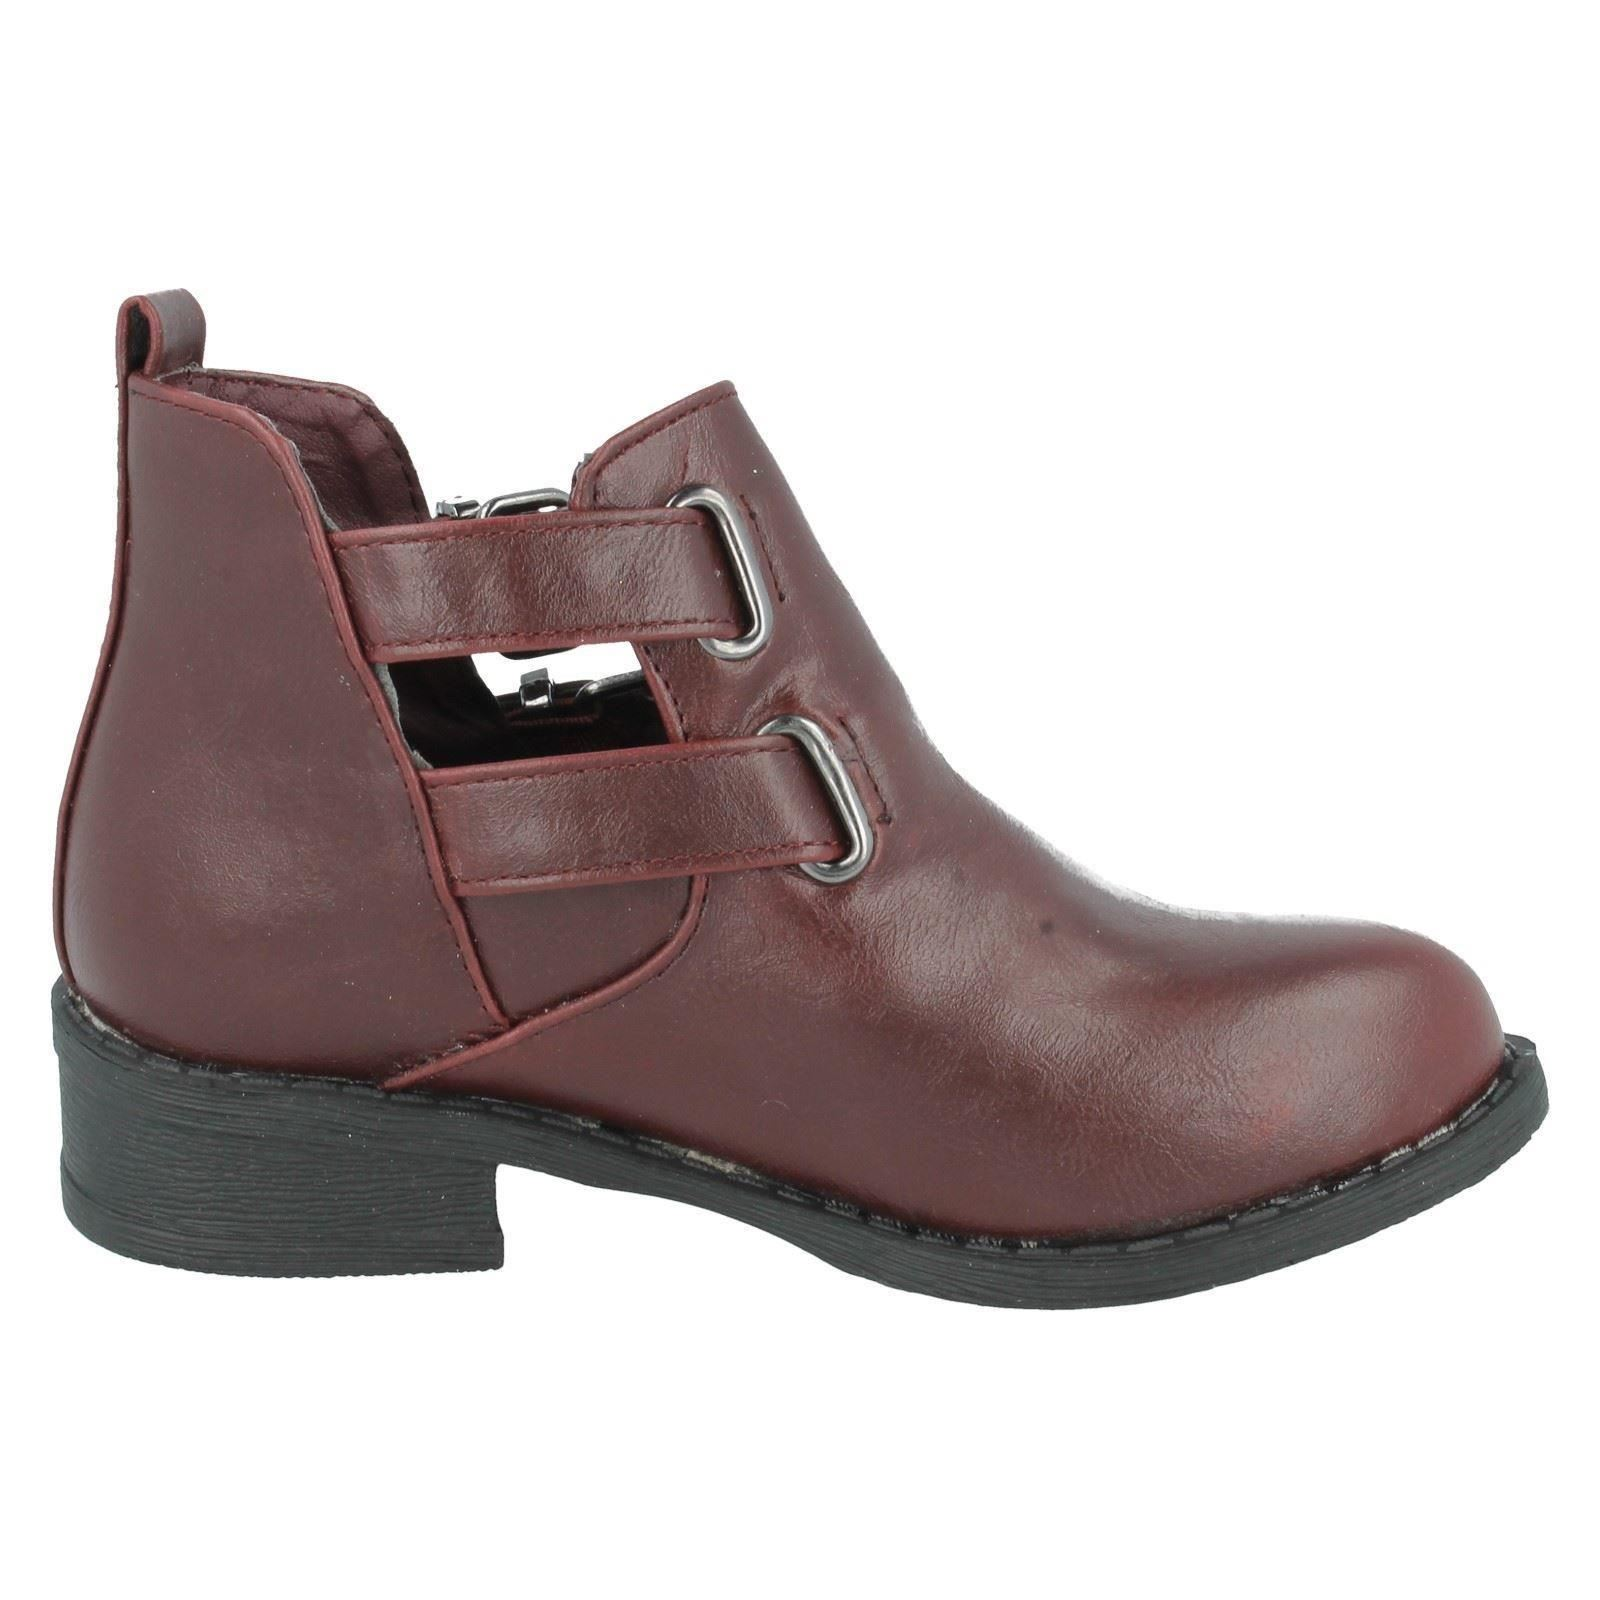 Girls Spot On Ankle Boots Style - H5035